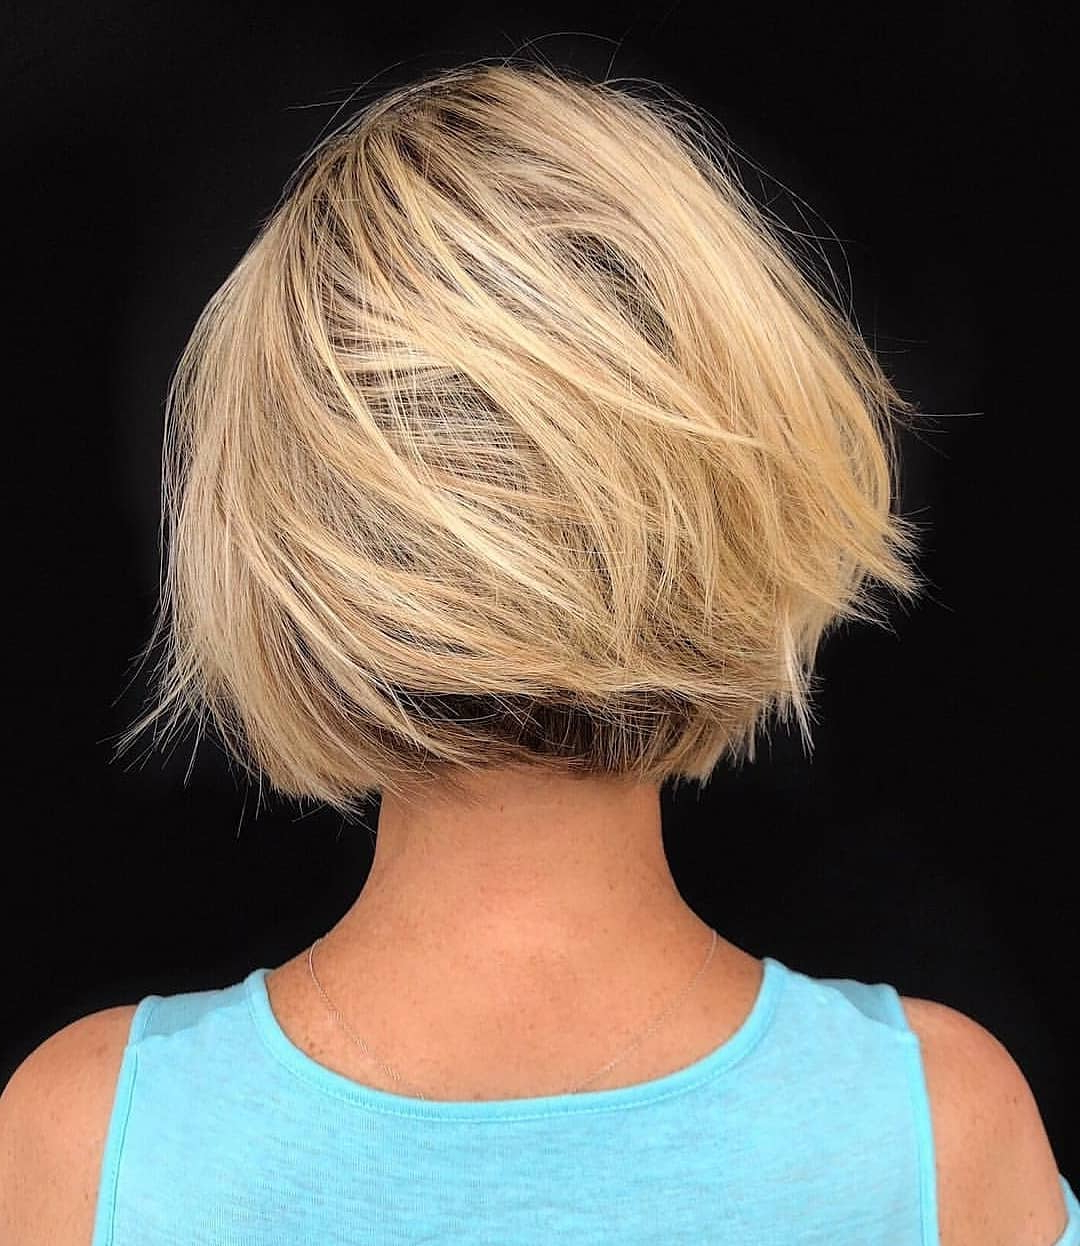 Top 10 Low Maintenance Short Bob Cuts For Thick Hair, Short With Low Maintenance Short Haircuts (View 8 of 25)